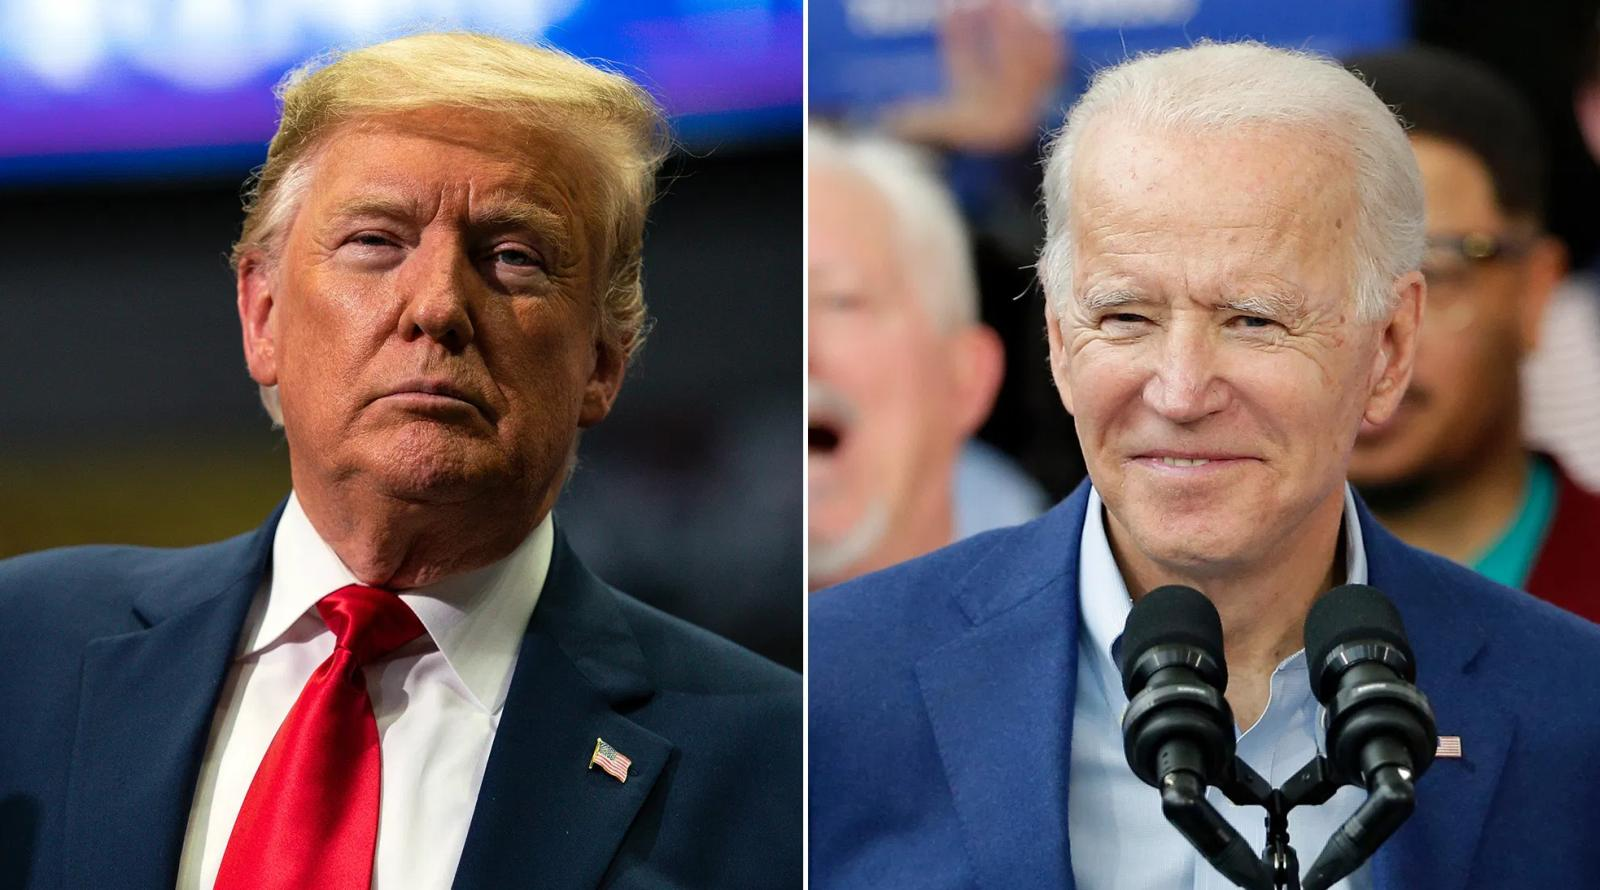 Lesser of Two Evils? Biden Might Win That Question - Election Central